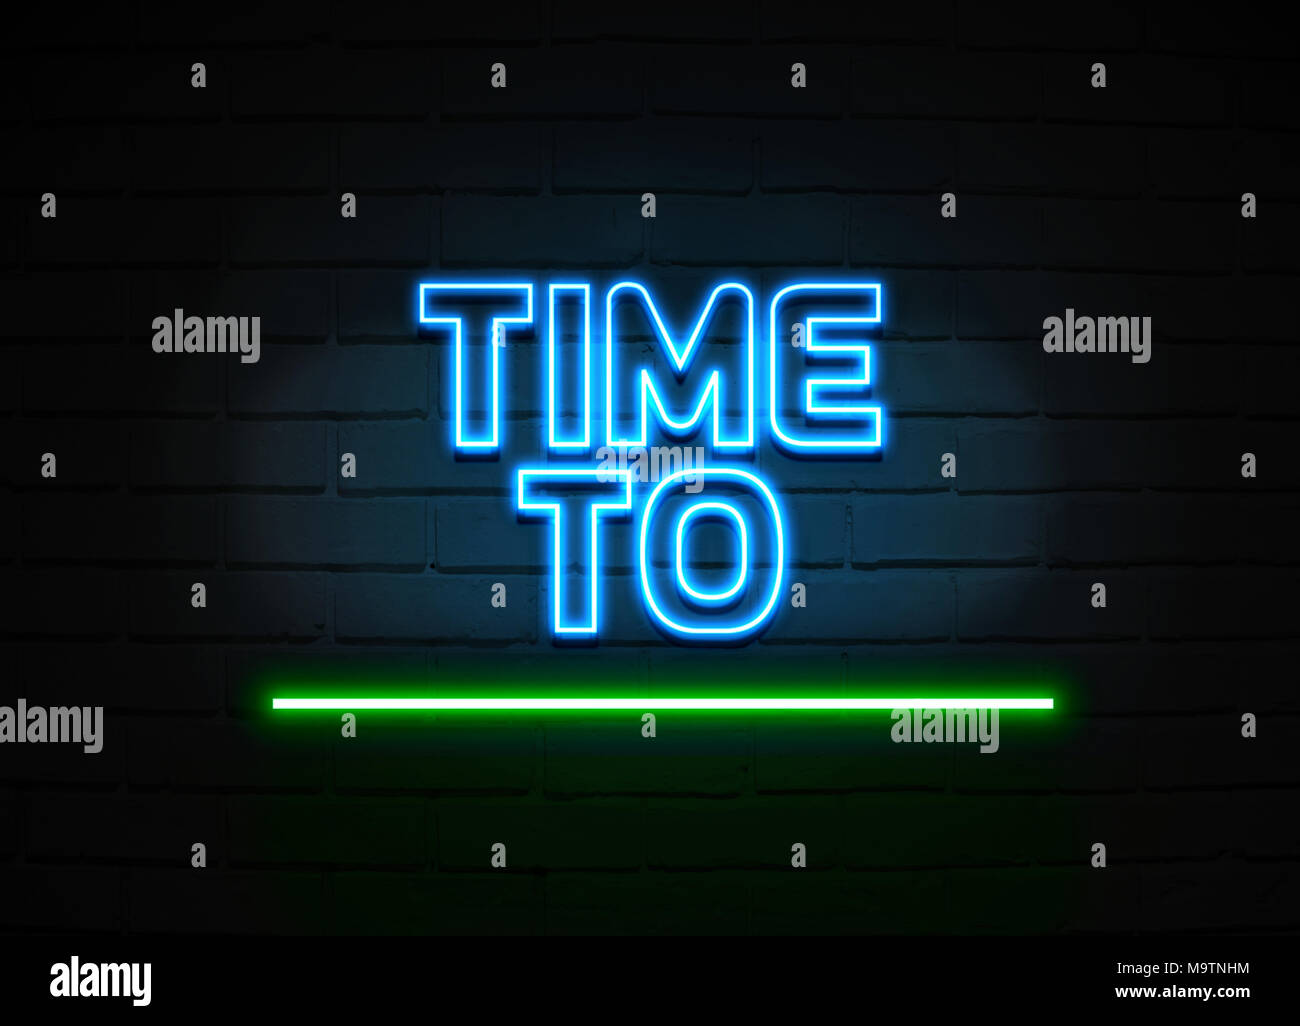 Time To Evaluate neon sign - Glowing Neon Sign on brickwall wall - 3D rendered royalty free stock illustration. Stock Photo